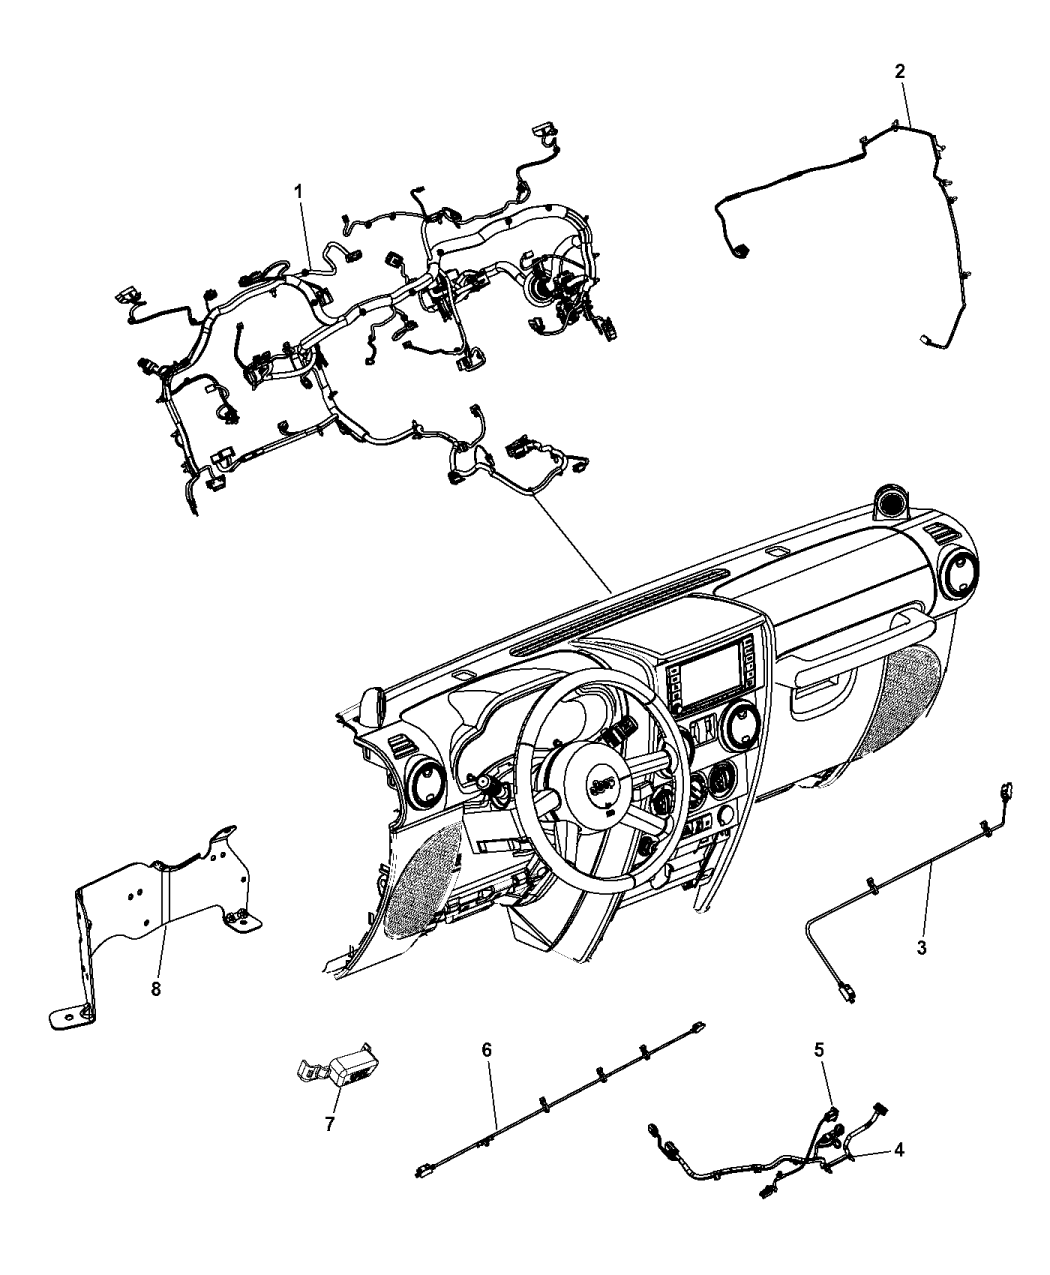 68165059ab Genuine Mopar Wiring Jumper Diagrams Instrument Panel 2015 Jeep Wrangler